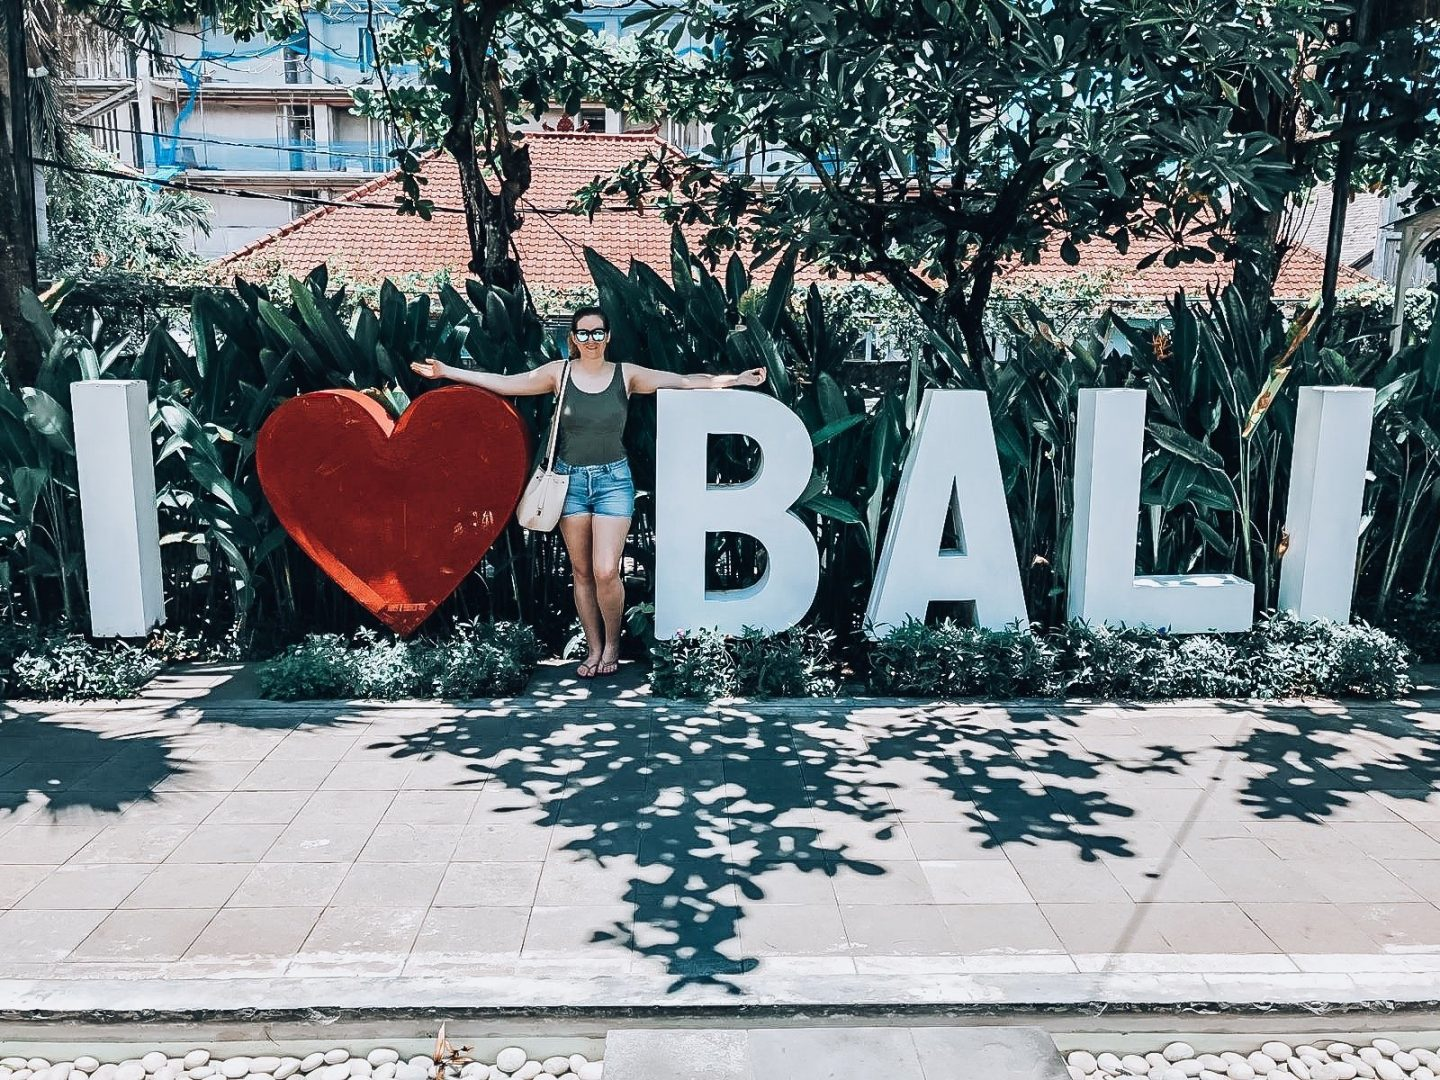 Bali Travel Guide for First Timers